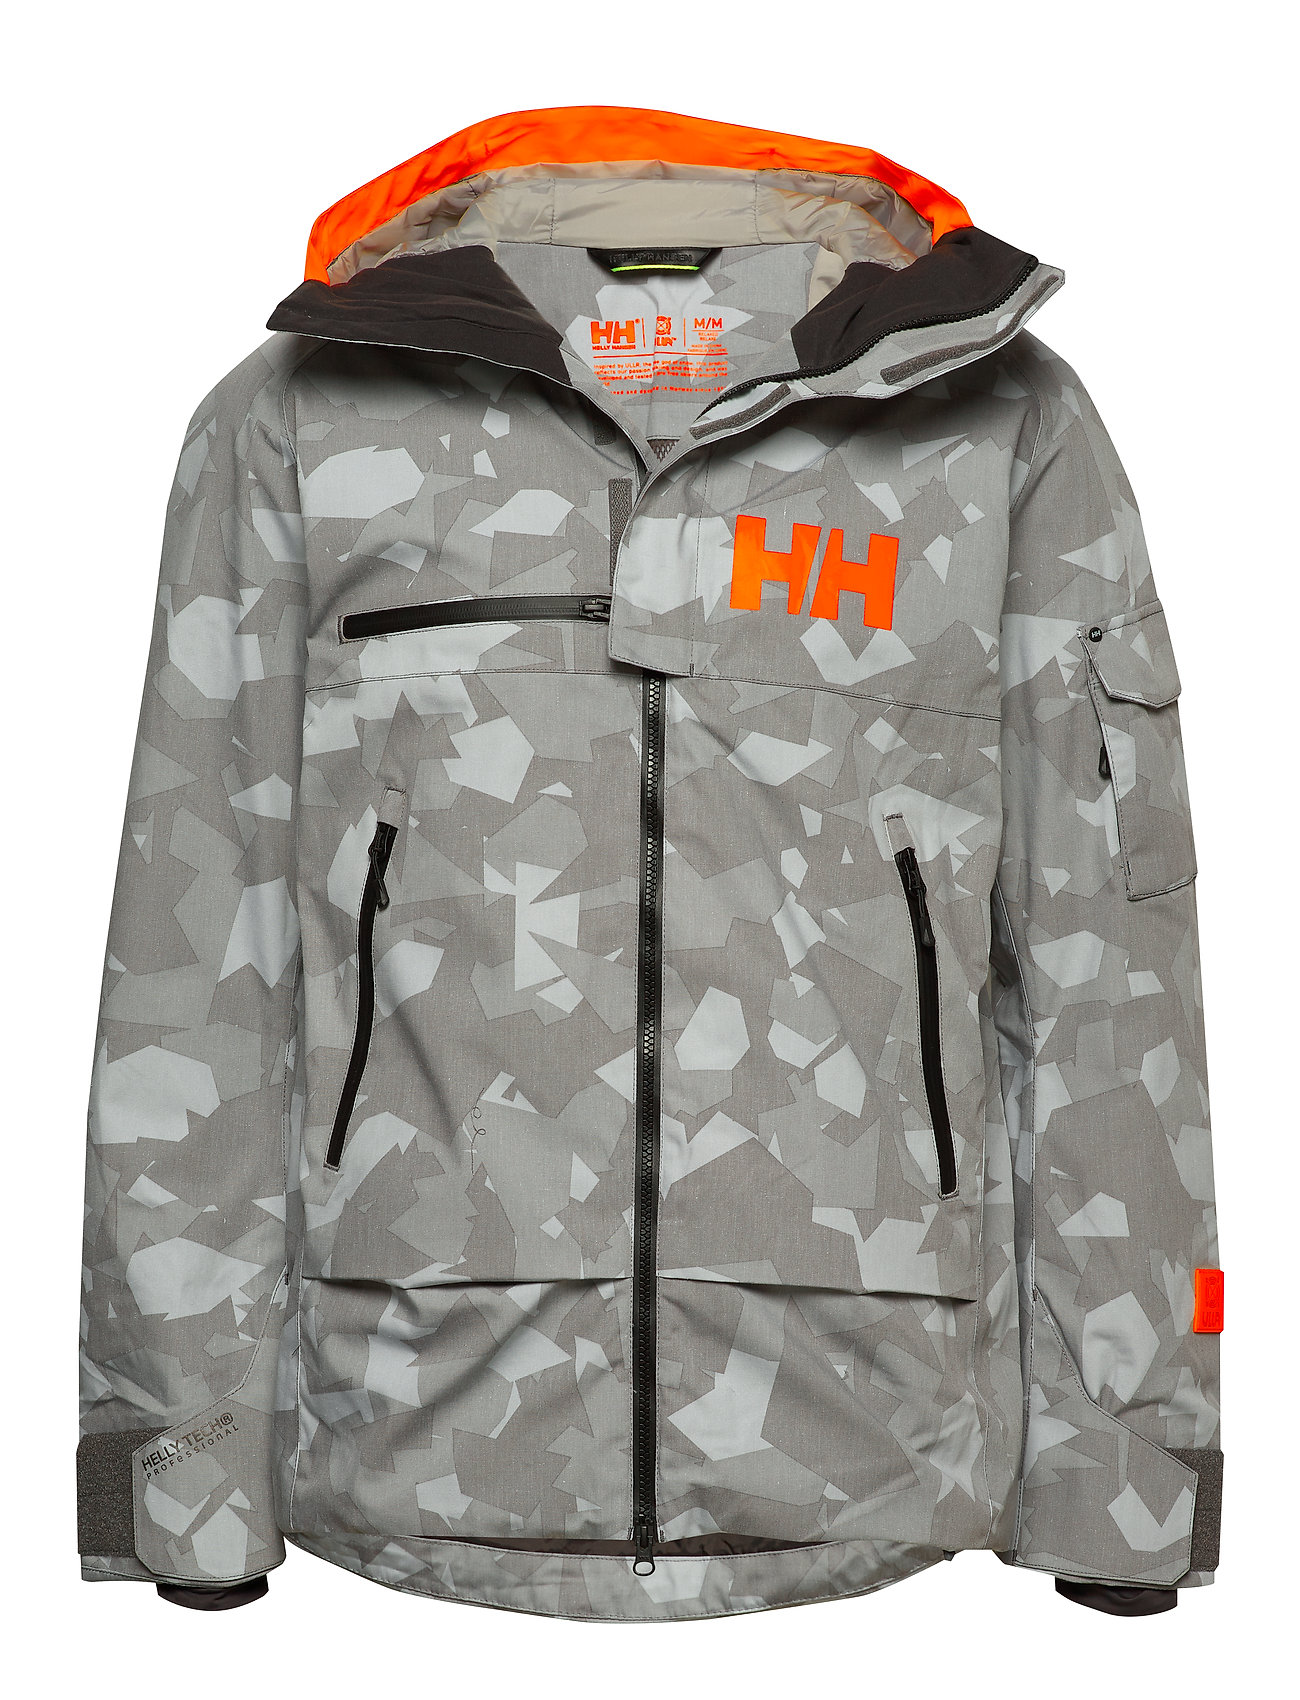 Helly Hansen GARIBALDI JACKET - QUIET SHADE CAMO